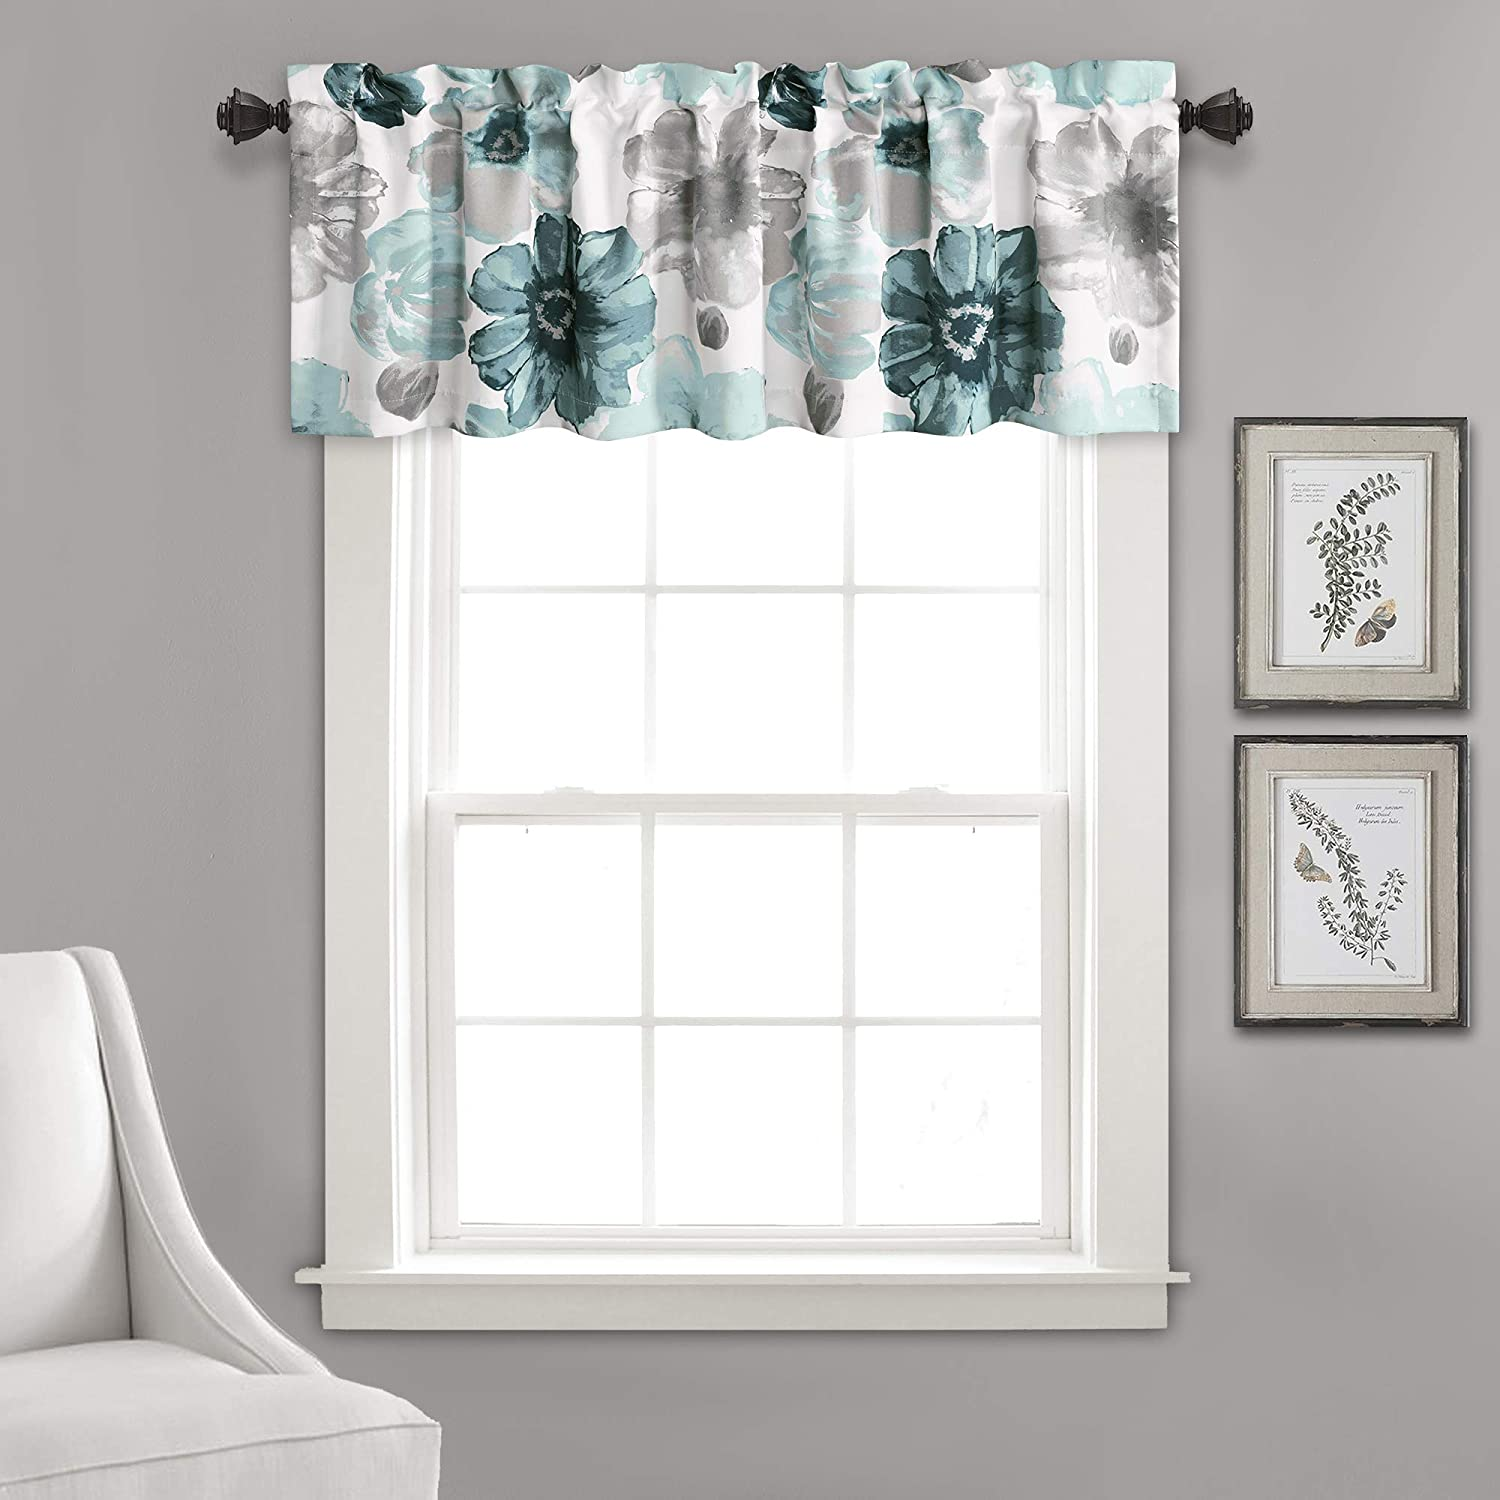 "Lush Decor Leah Floral Window Curtain Valance, 18"" x 52"", Blue, L"